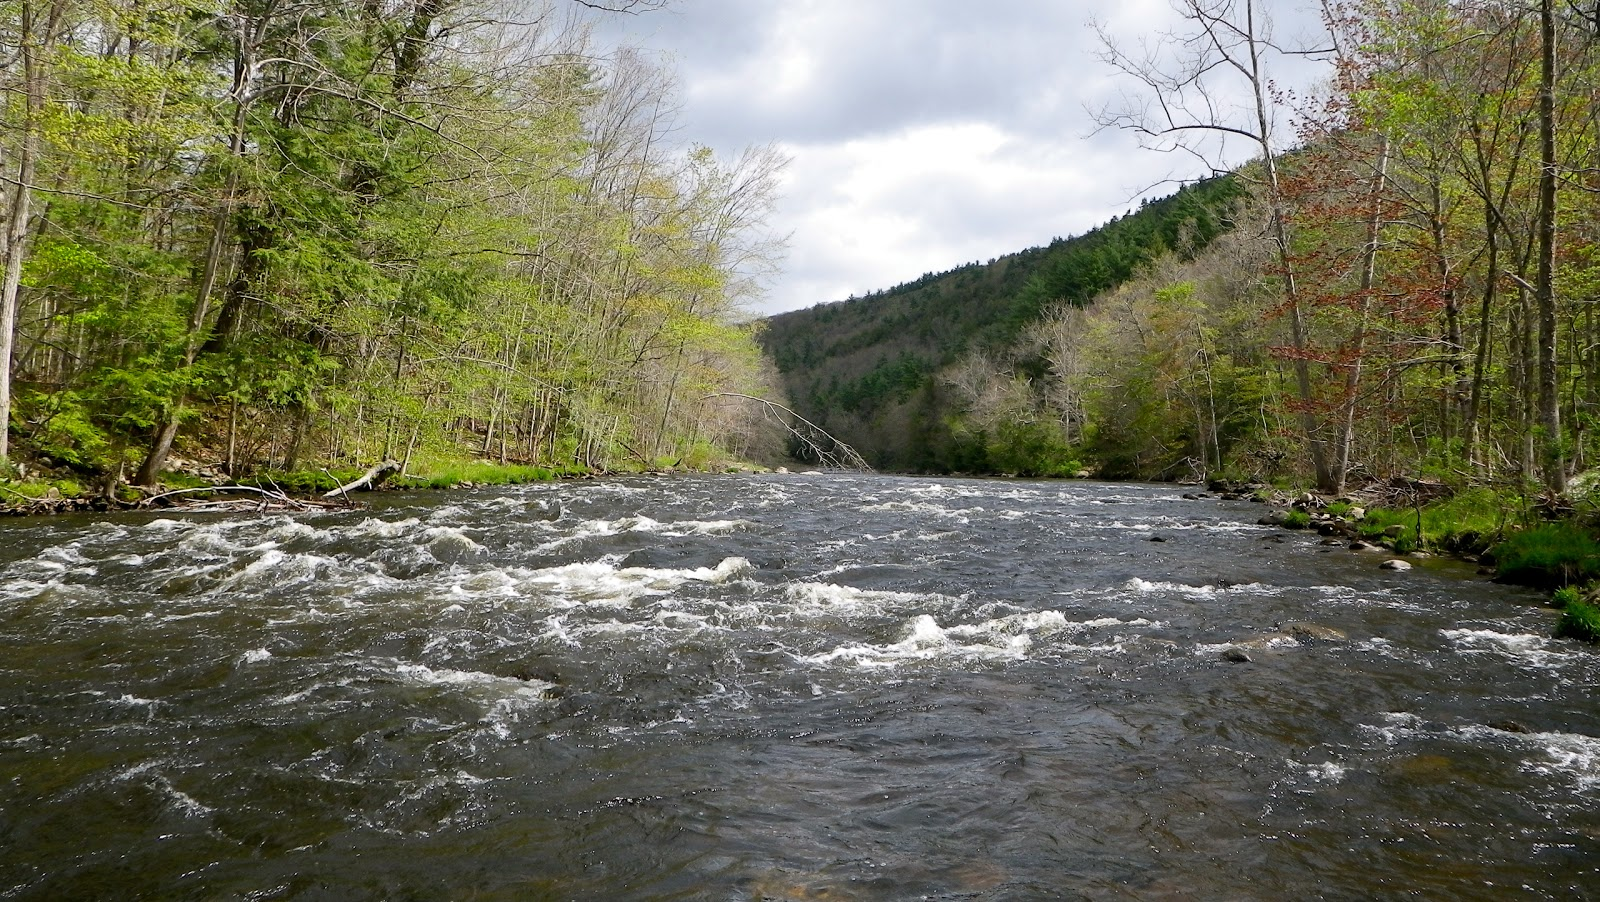 The jersey angler farmington river for Farmington river fishing report